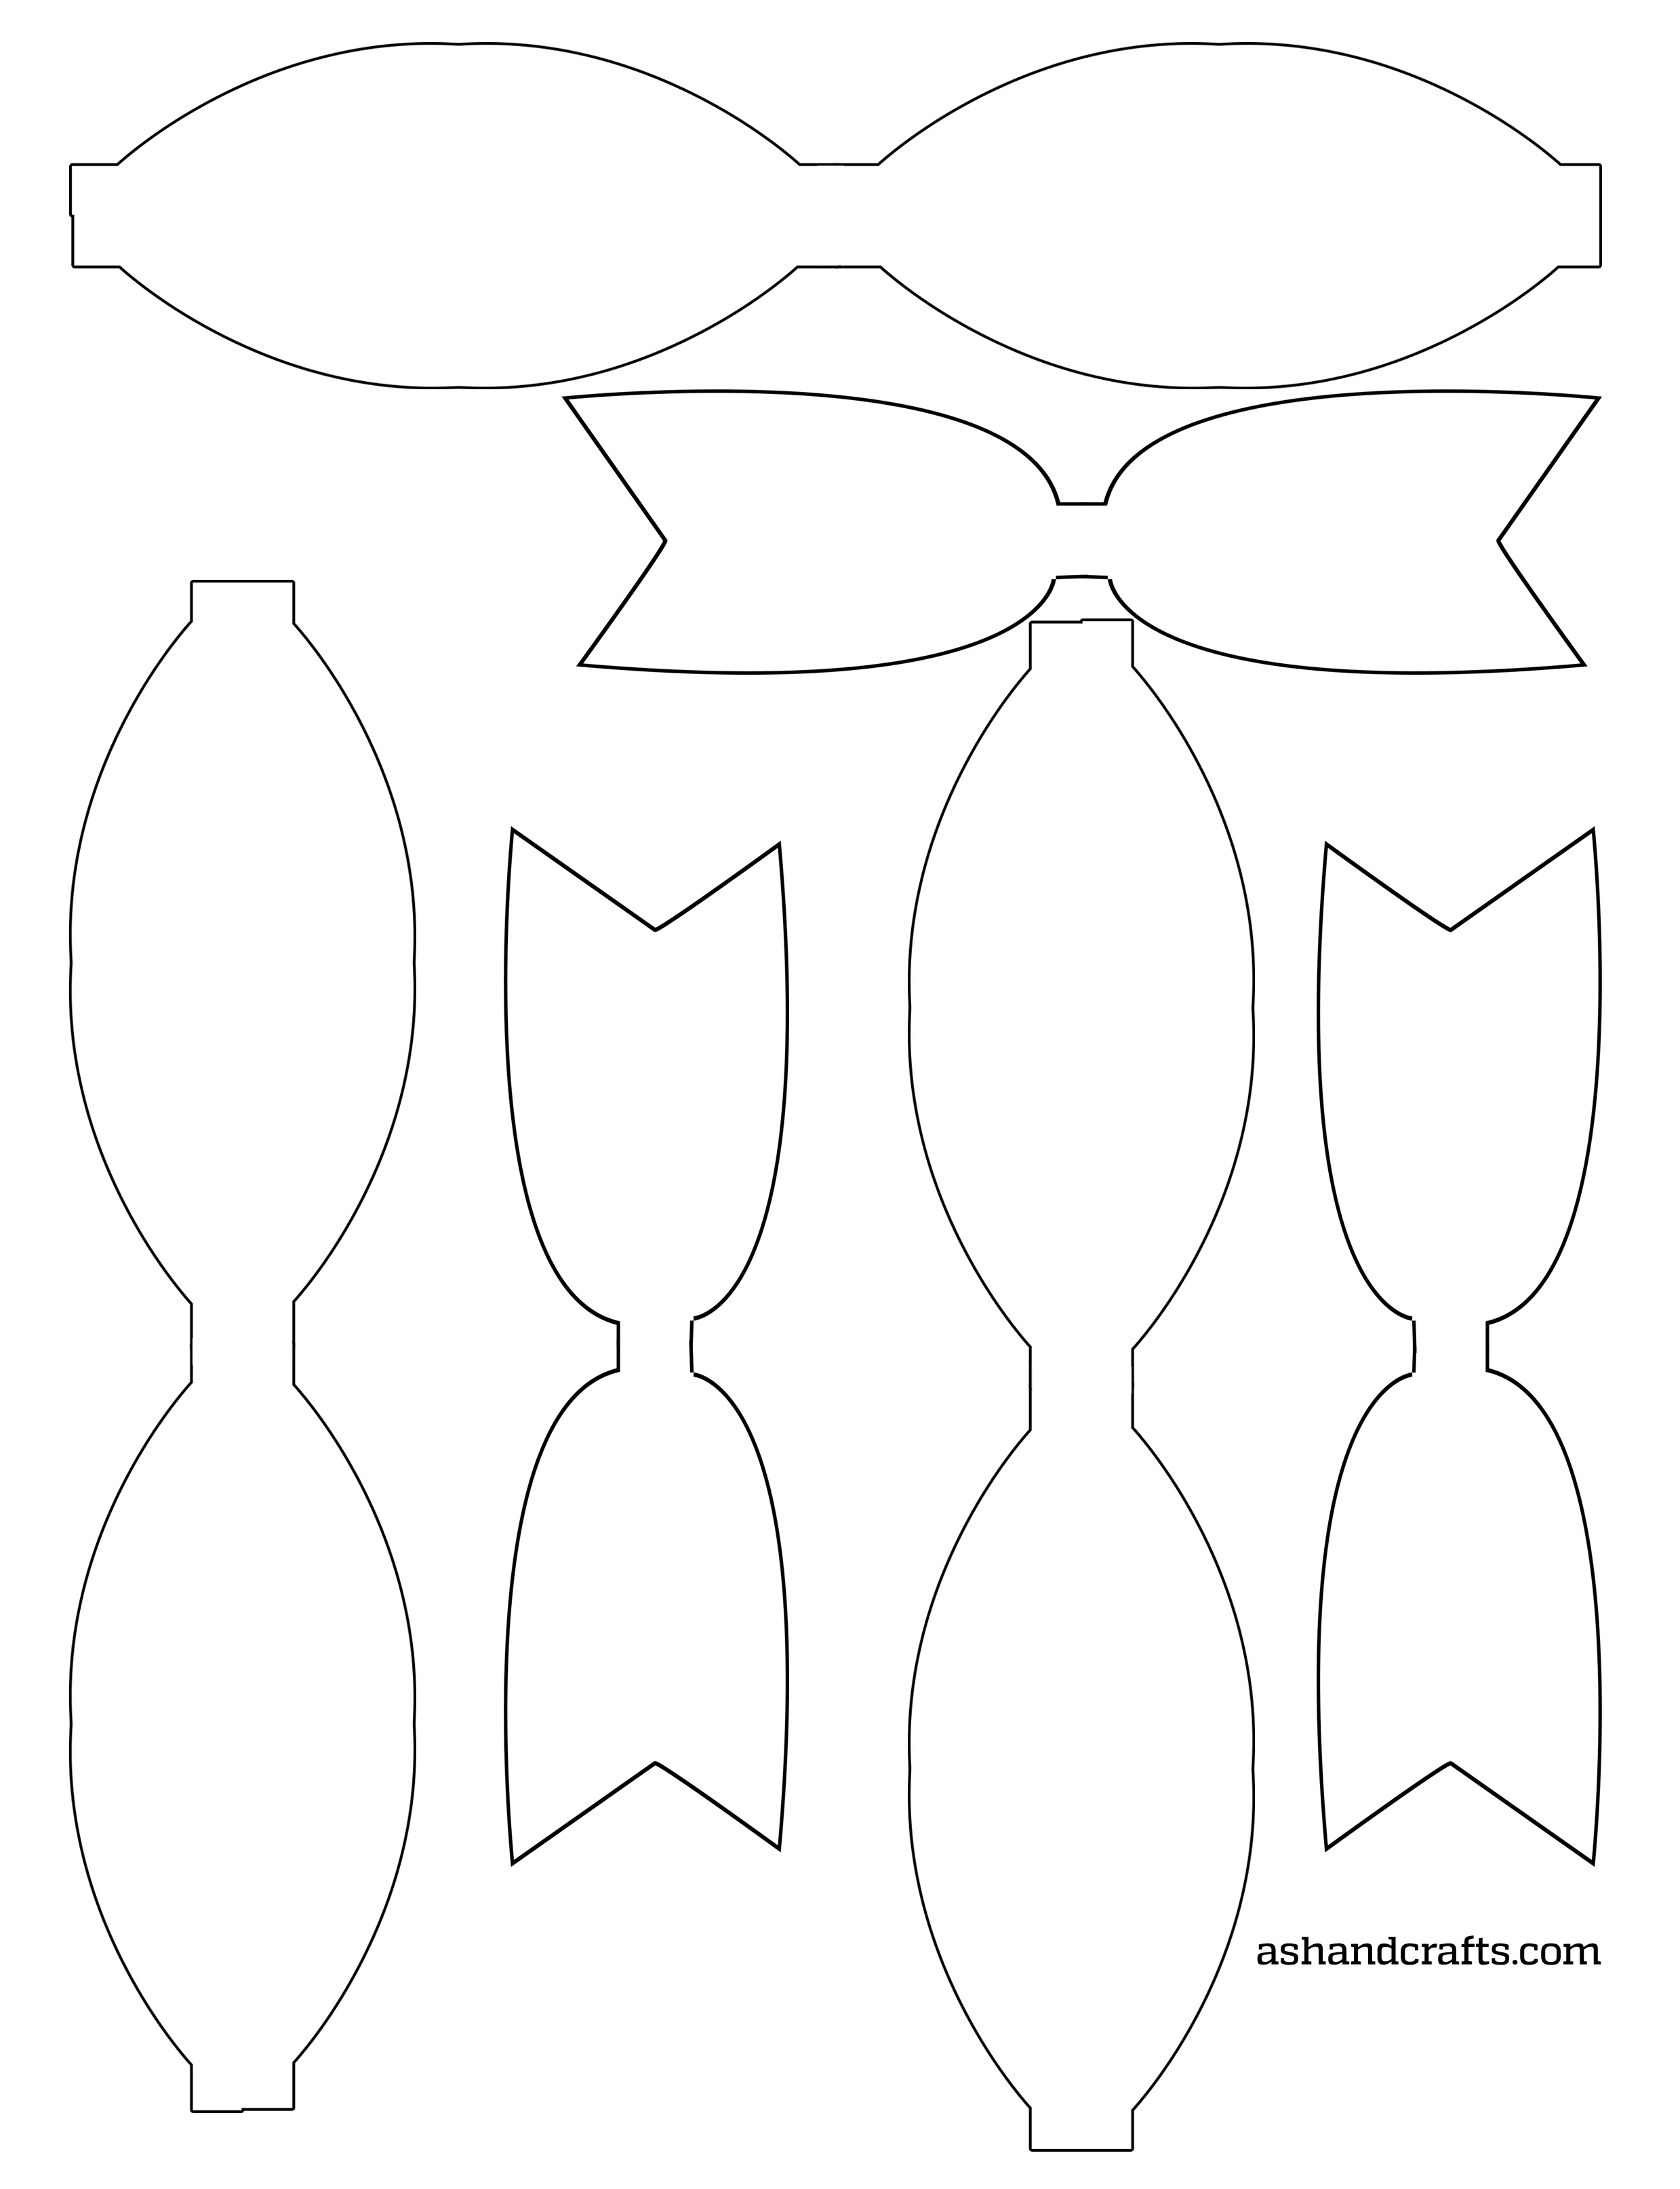 image regarding Free Printable Hair Bow Templates identified as Freebie Friday: Printable Paper Bows - Ash and Crafts